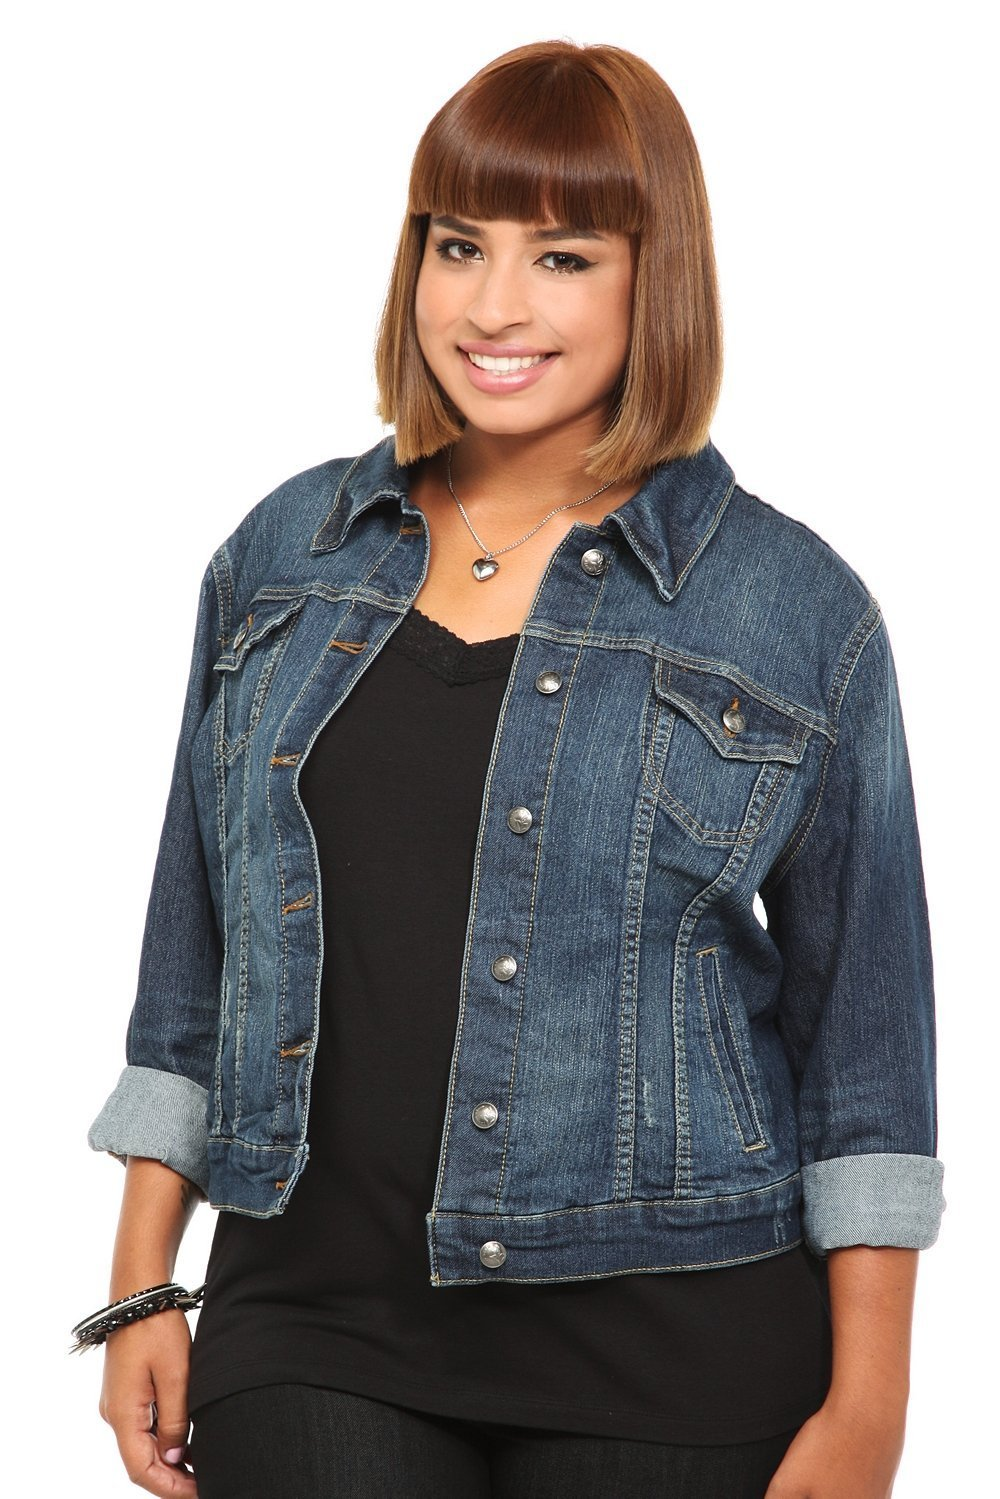 Having an unlined denim jacket in your wardrobe is a must-have. The traditional button closure and double chest pockets create a classic appearance. A variety of brands like Levi's and Wrangler craft these outwear essentials that you can throw on with any outfit.